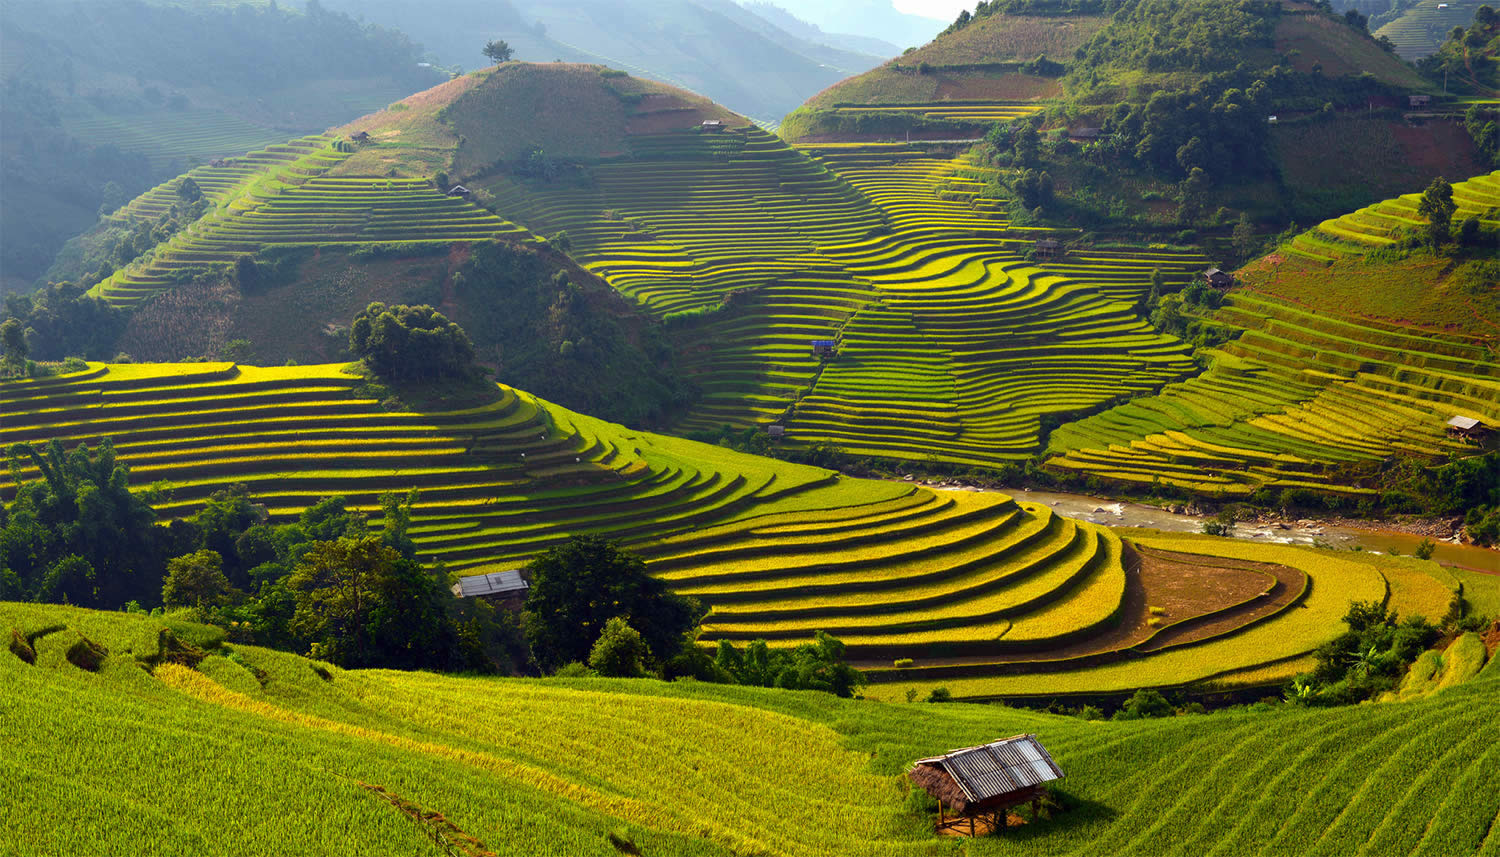 green rice terraces, paddy fields in vietnam